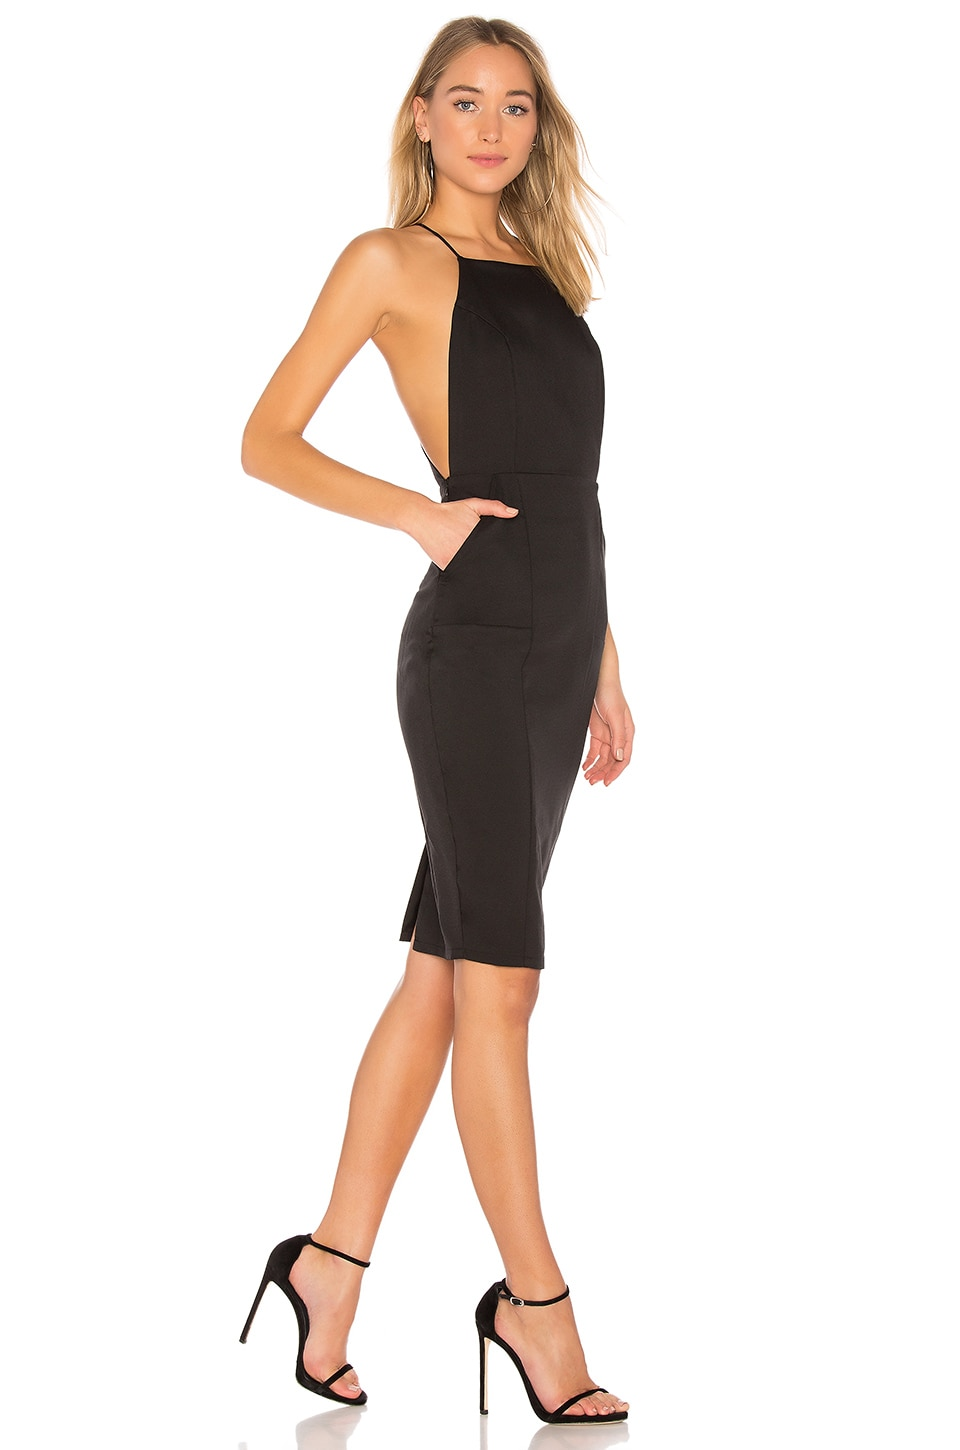 Isolla Dress by AIRLIE